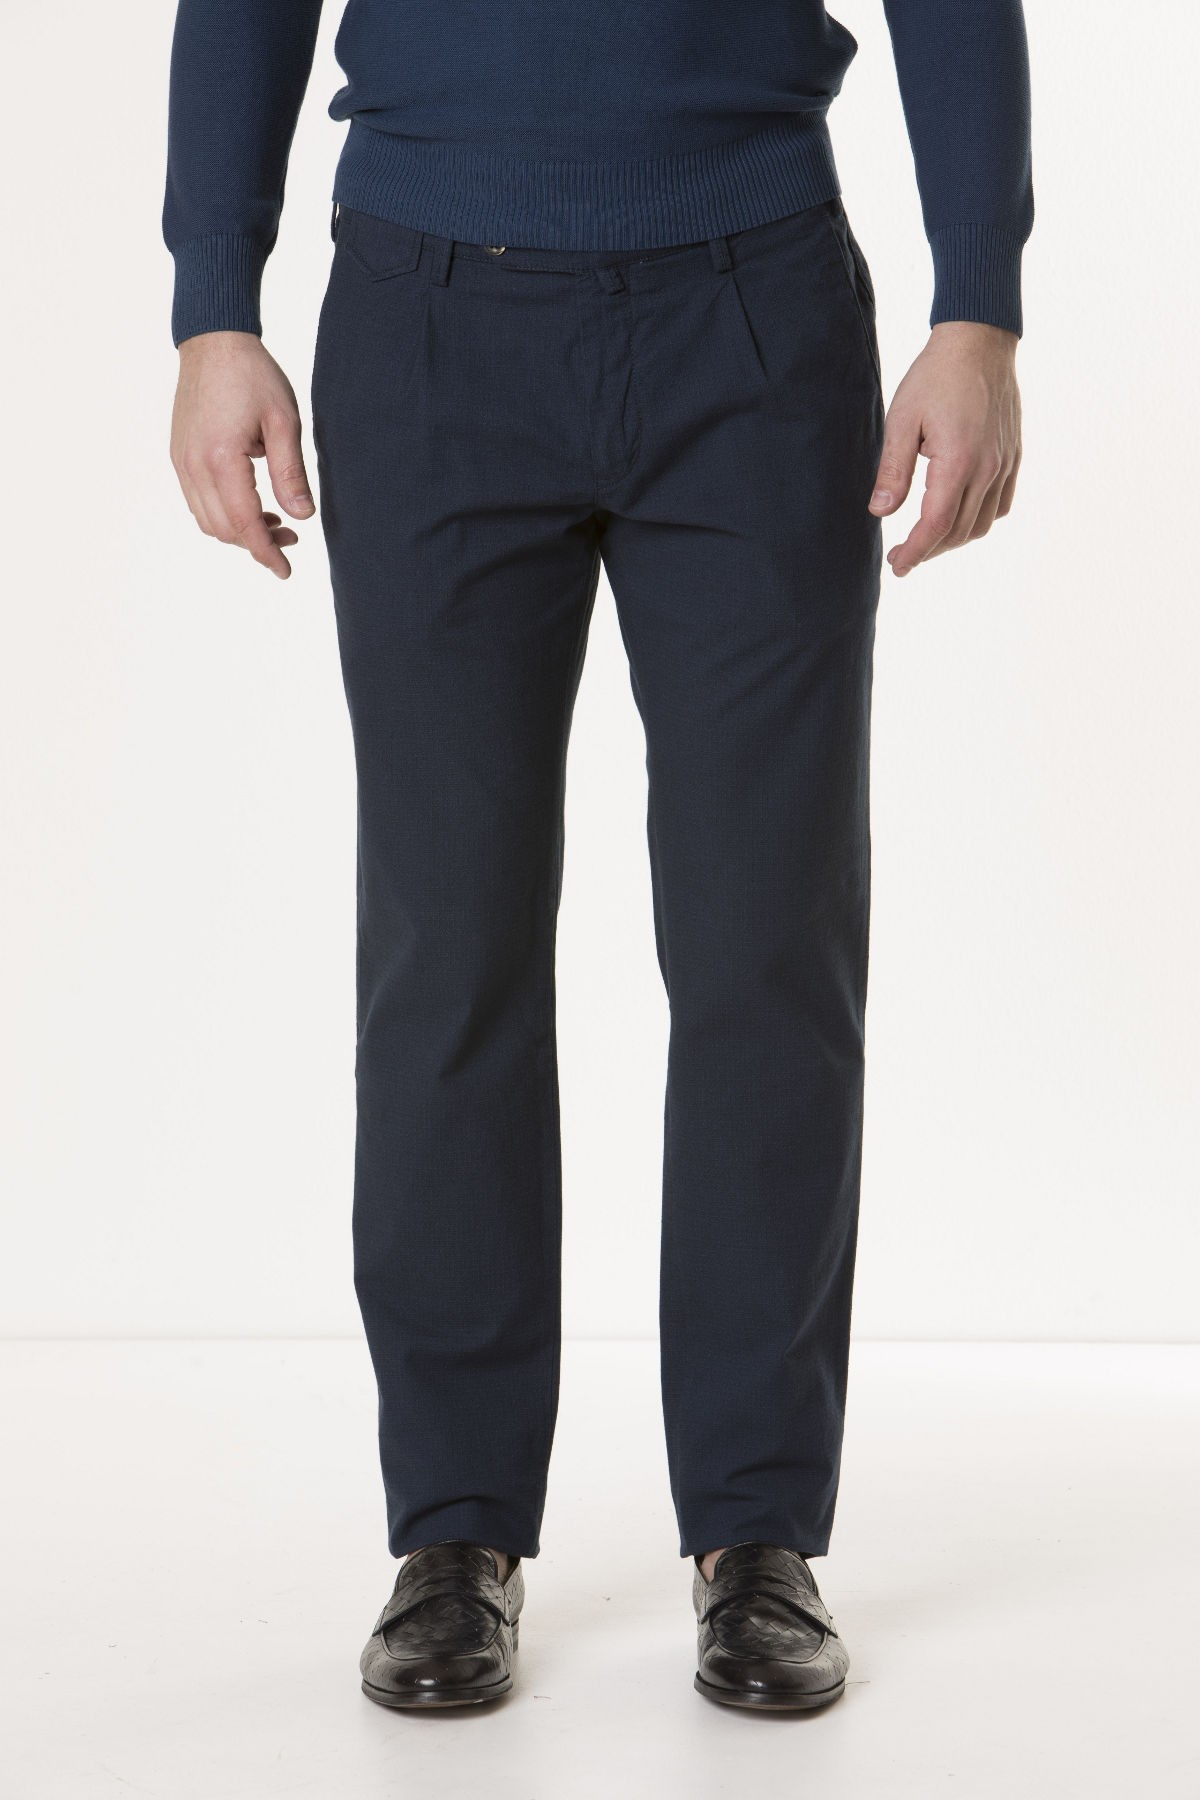 Trousers for man PT01 S/S 18